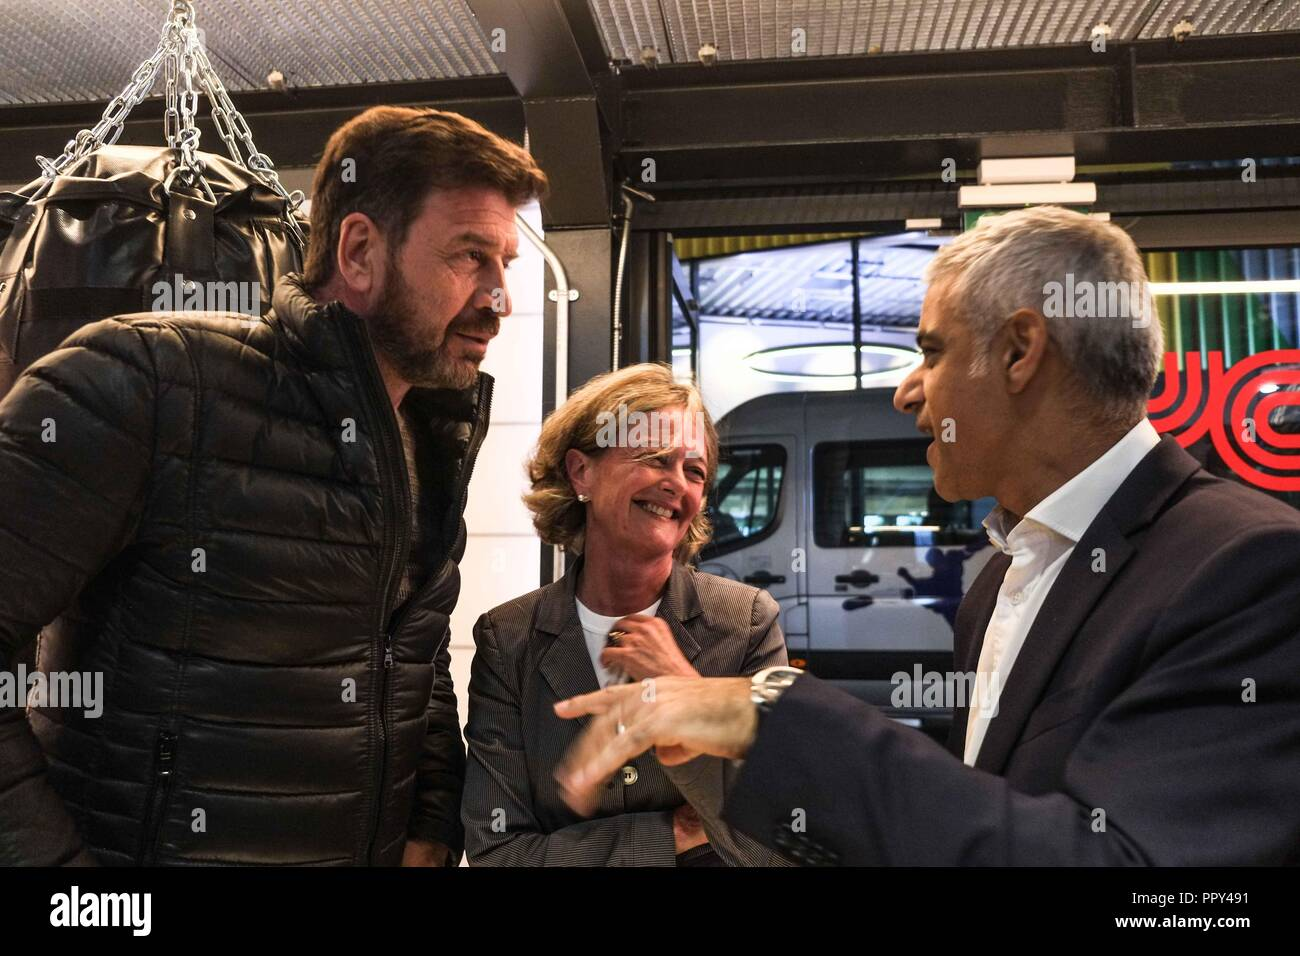 London 28th September 2018: DIY SOS TV presenter Nick Knowles, Kensington  and Chelsea Councillor